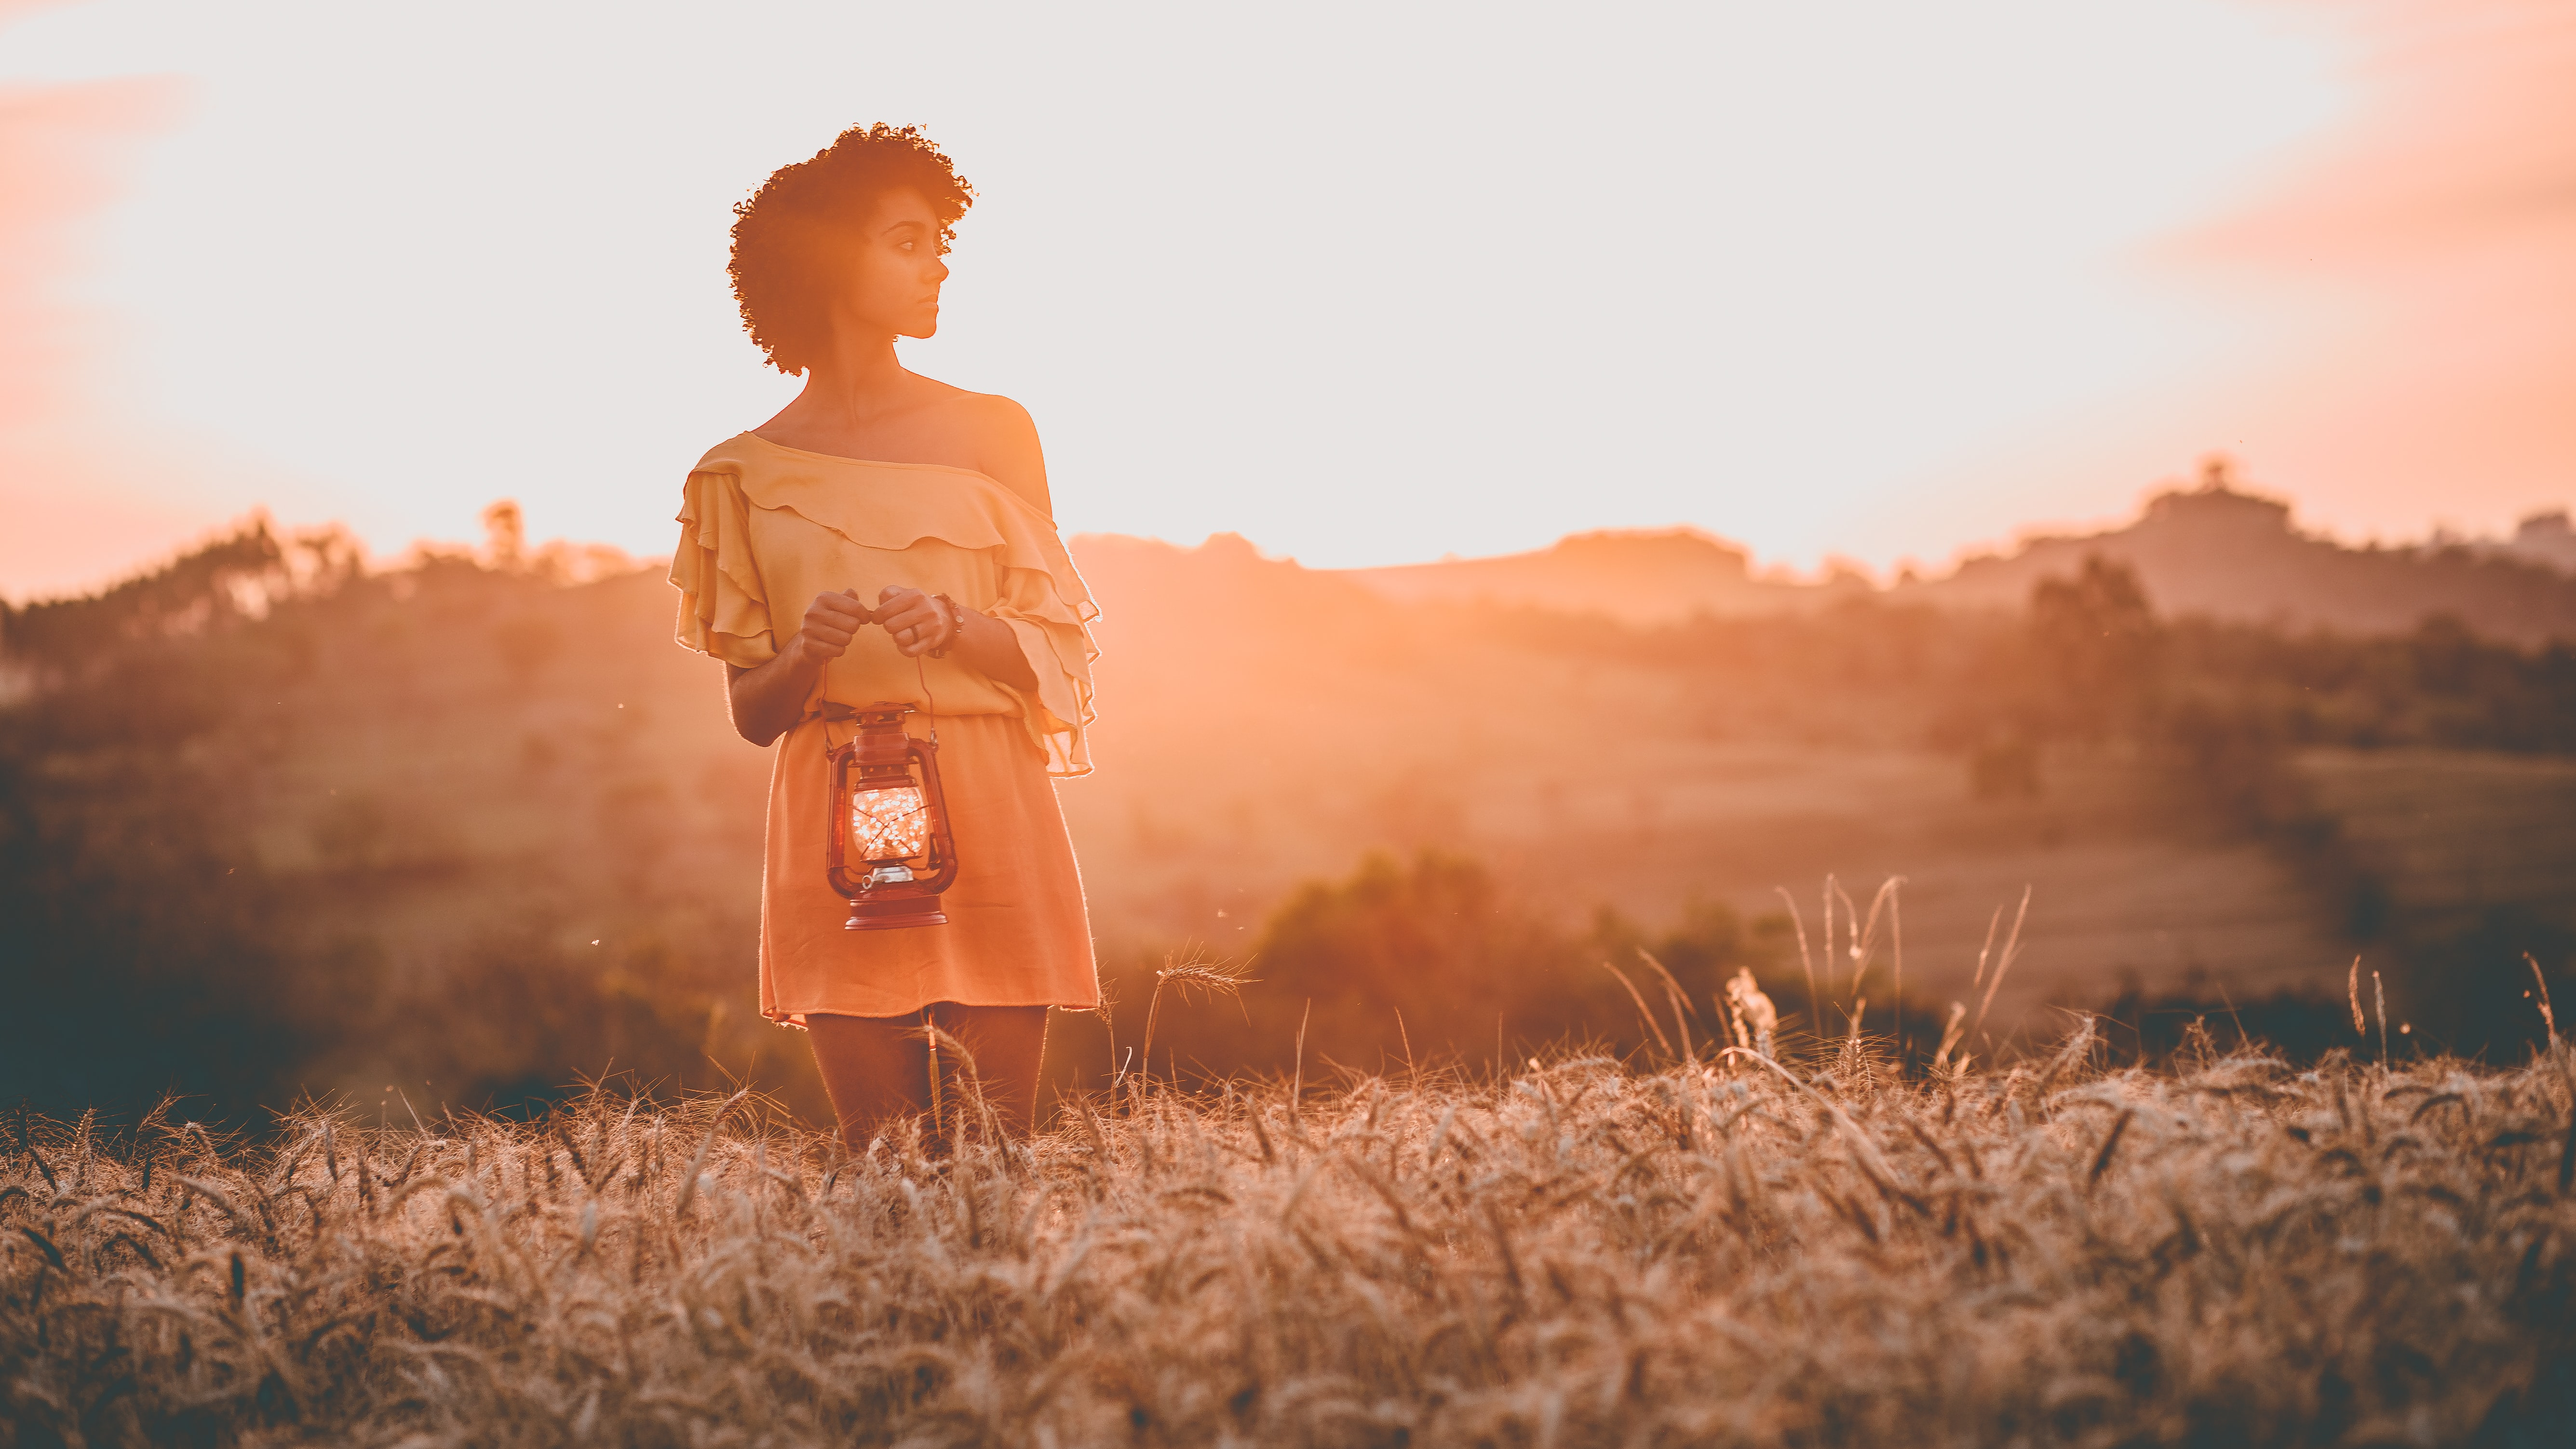 woman standing on grass field at sunset